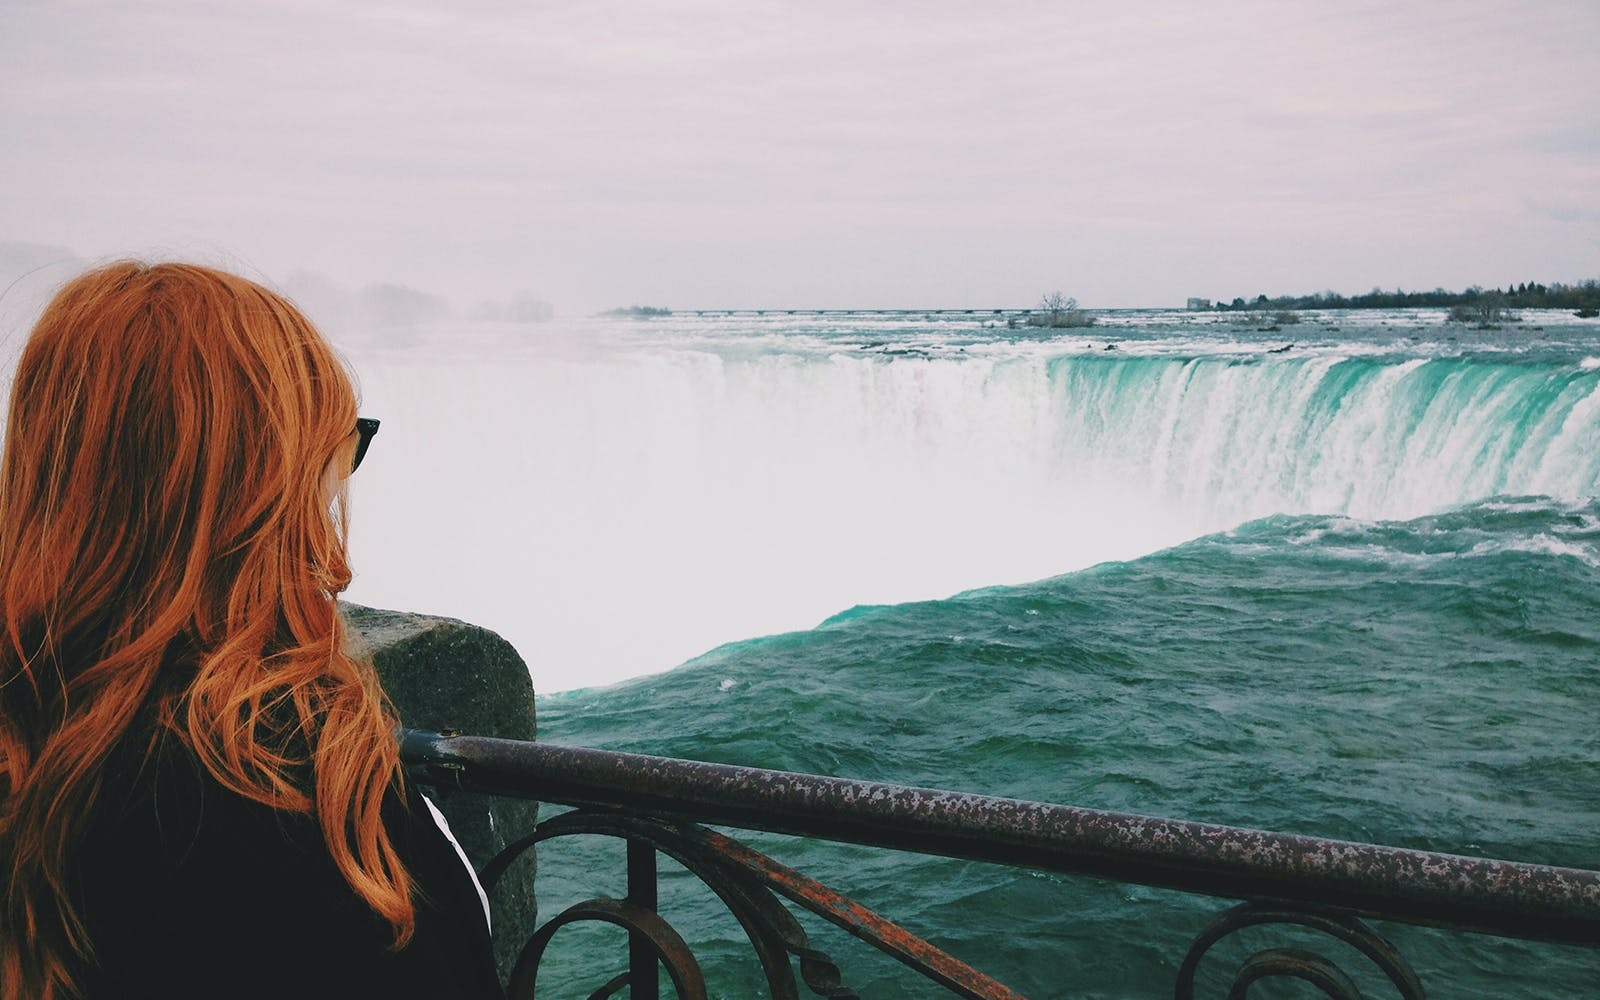 Day tour to Niagara Falls